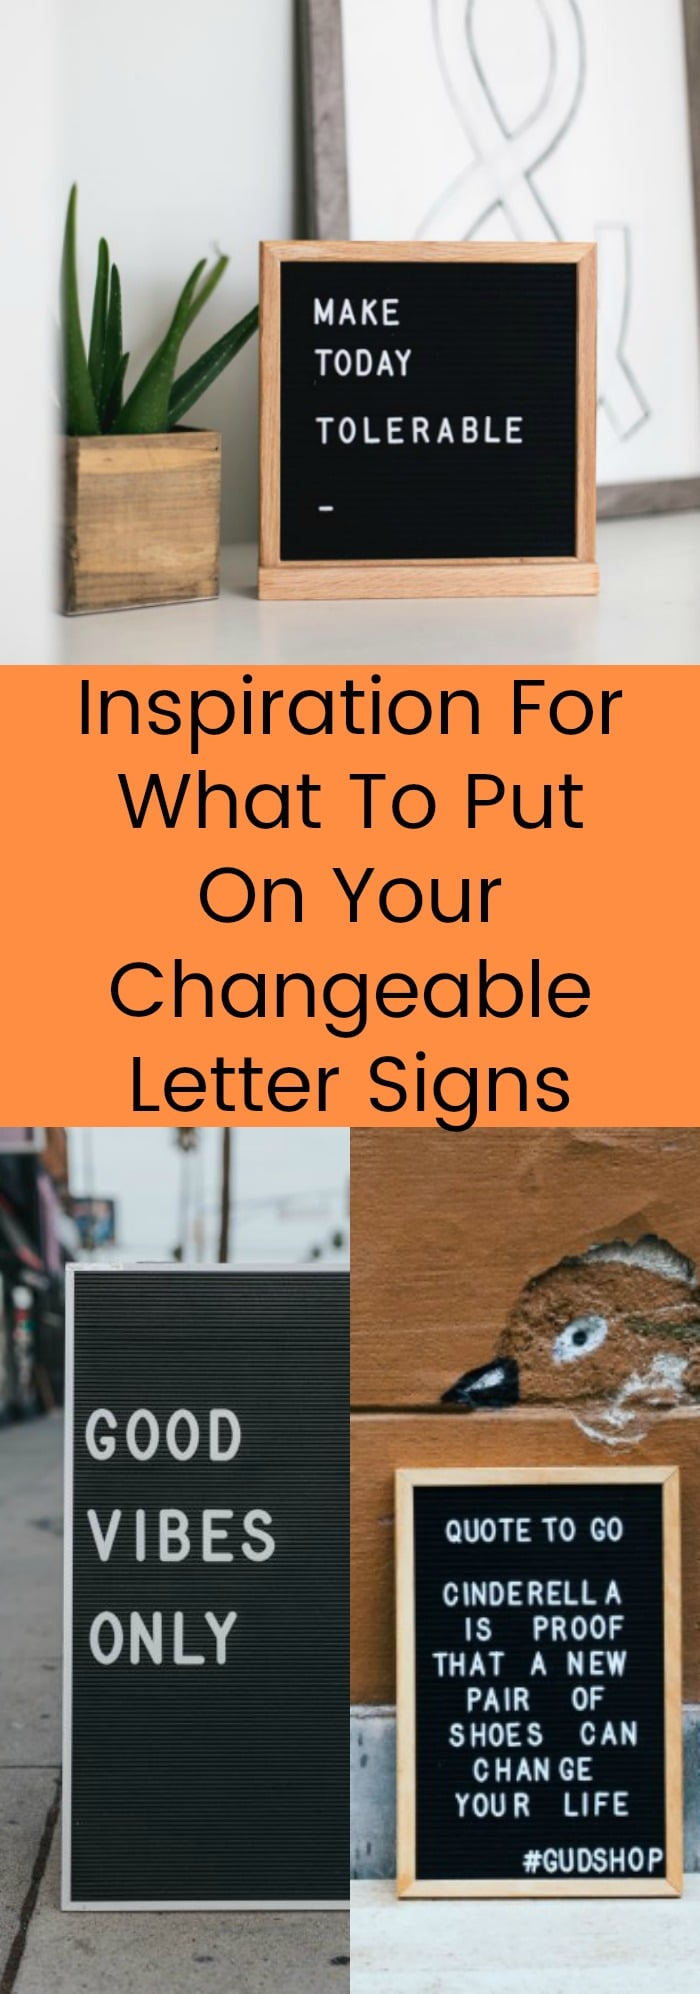 Inspiration For What To Put On Your Changeable Letter Signs